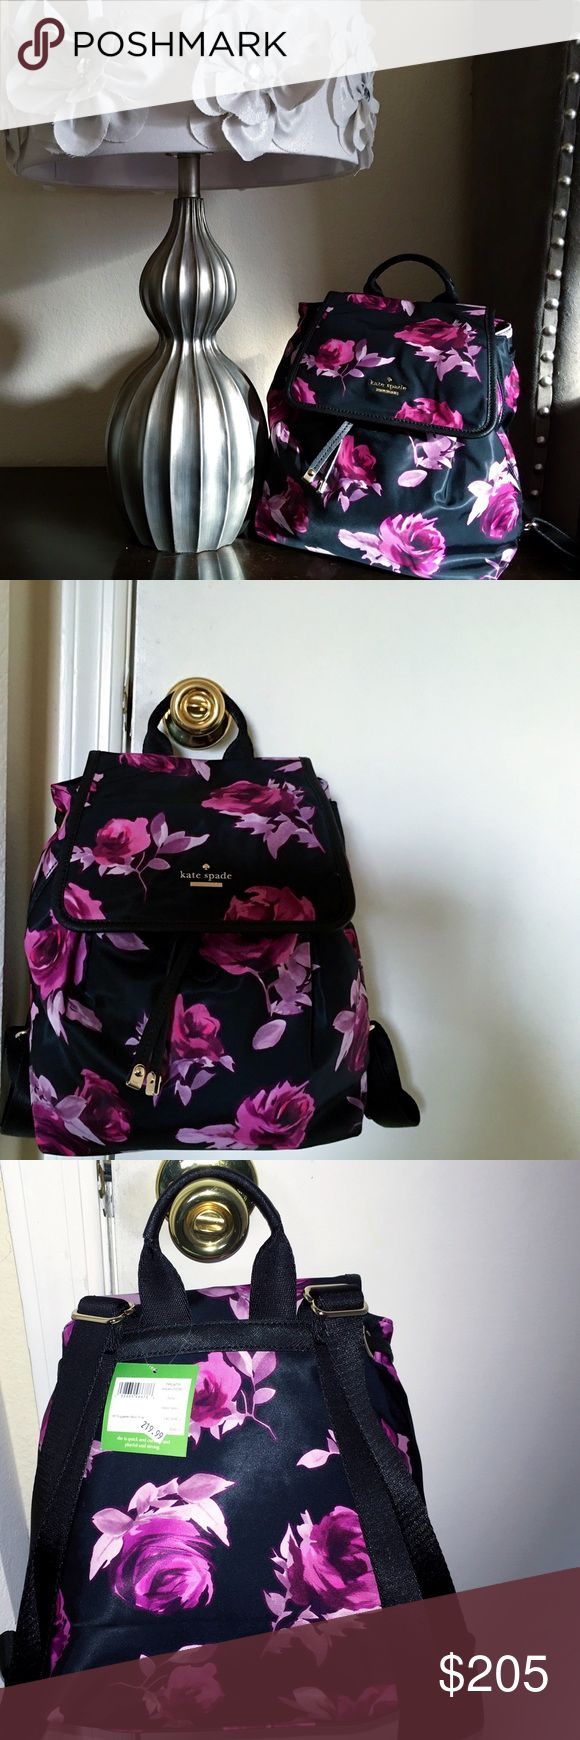 "ON SALE! Dazzling Kate Spade Backpack This stunning ""Molly"" backpack by Kate Spade features a floral design and golden accents. New with tags. I am open to all reasonable offers. On sale until 12/30/16, then back to regular pricing. kate spade Bags Backpacks"